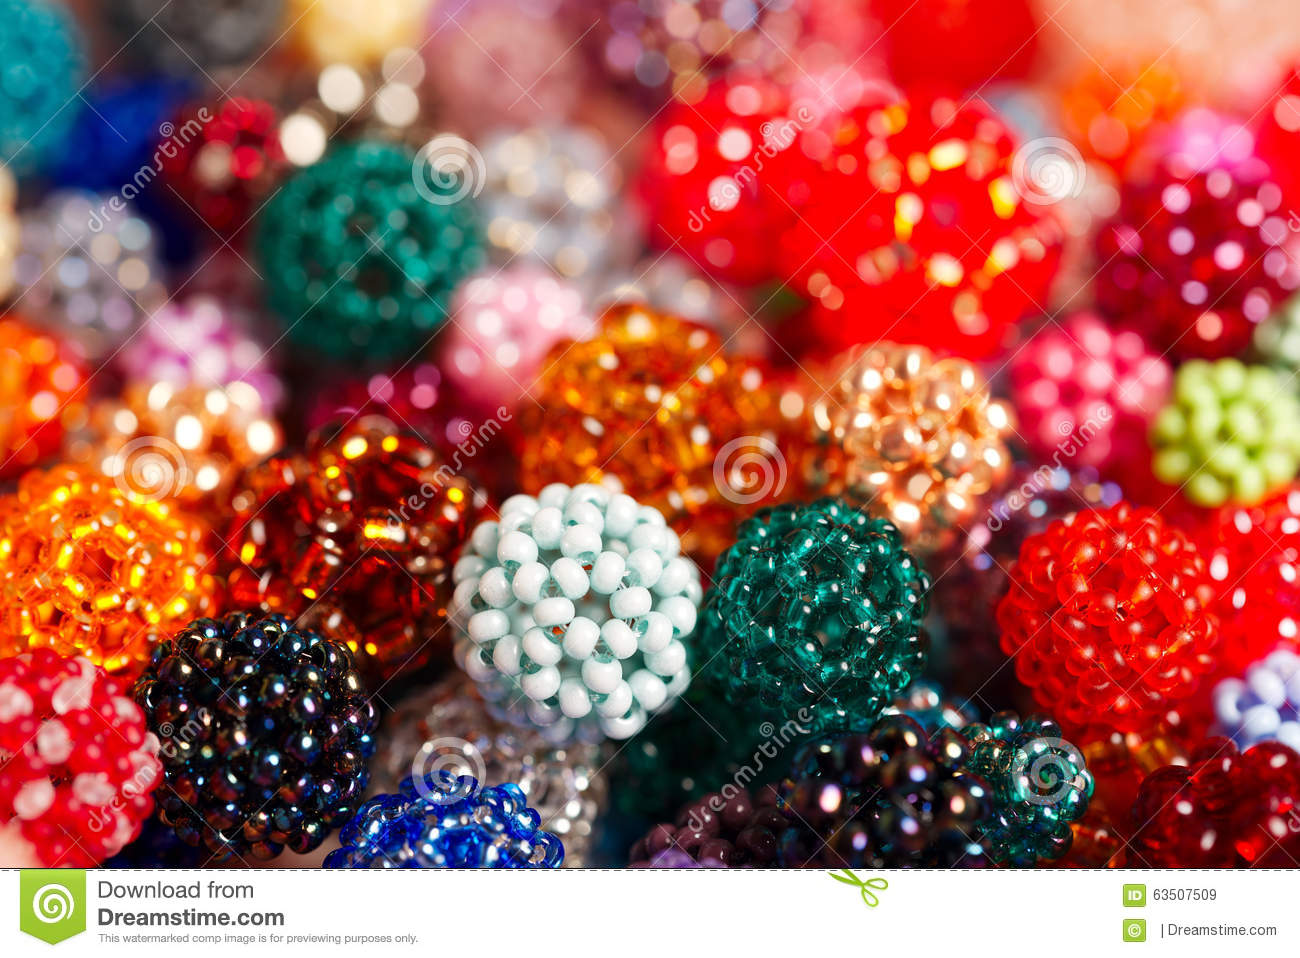 Hand Wowen Colorful Balls Made Of Tiny Glass Seed Beads Stock Image Image Of Pink Bead 63507509